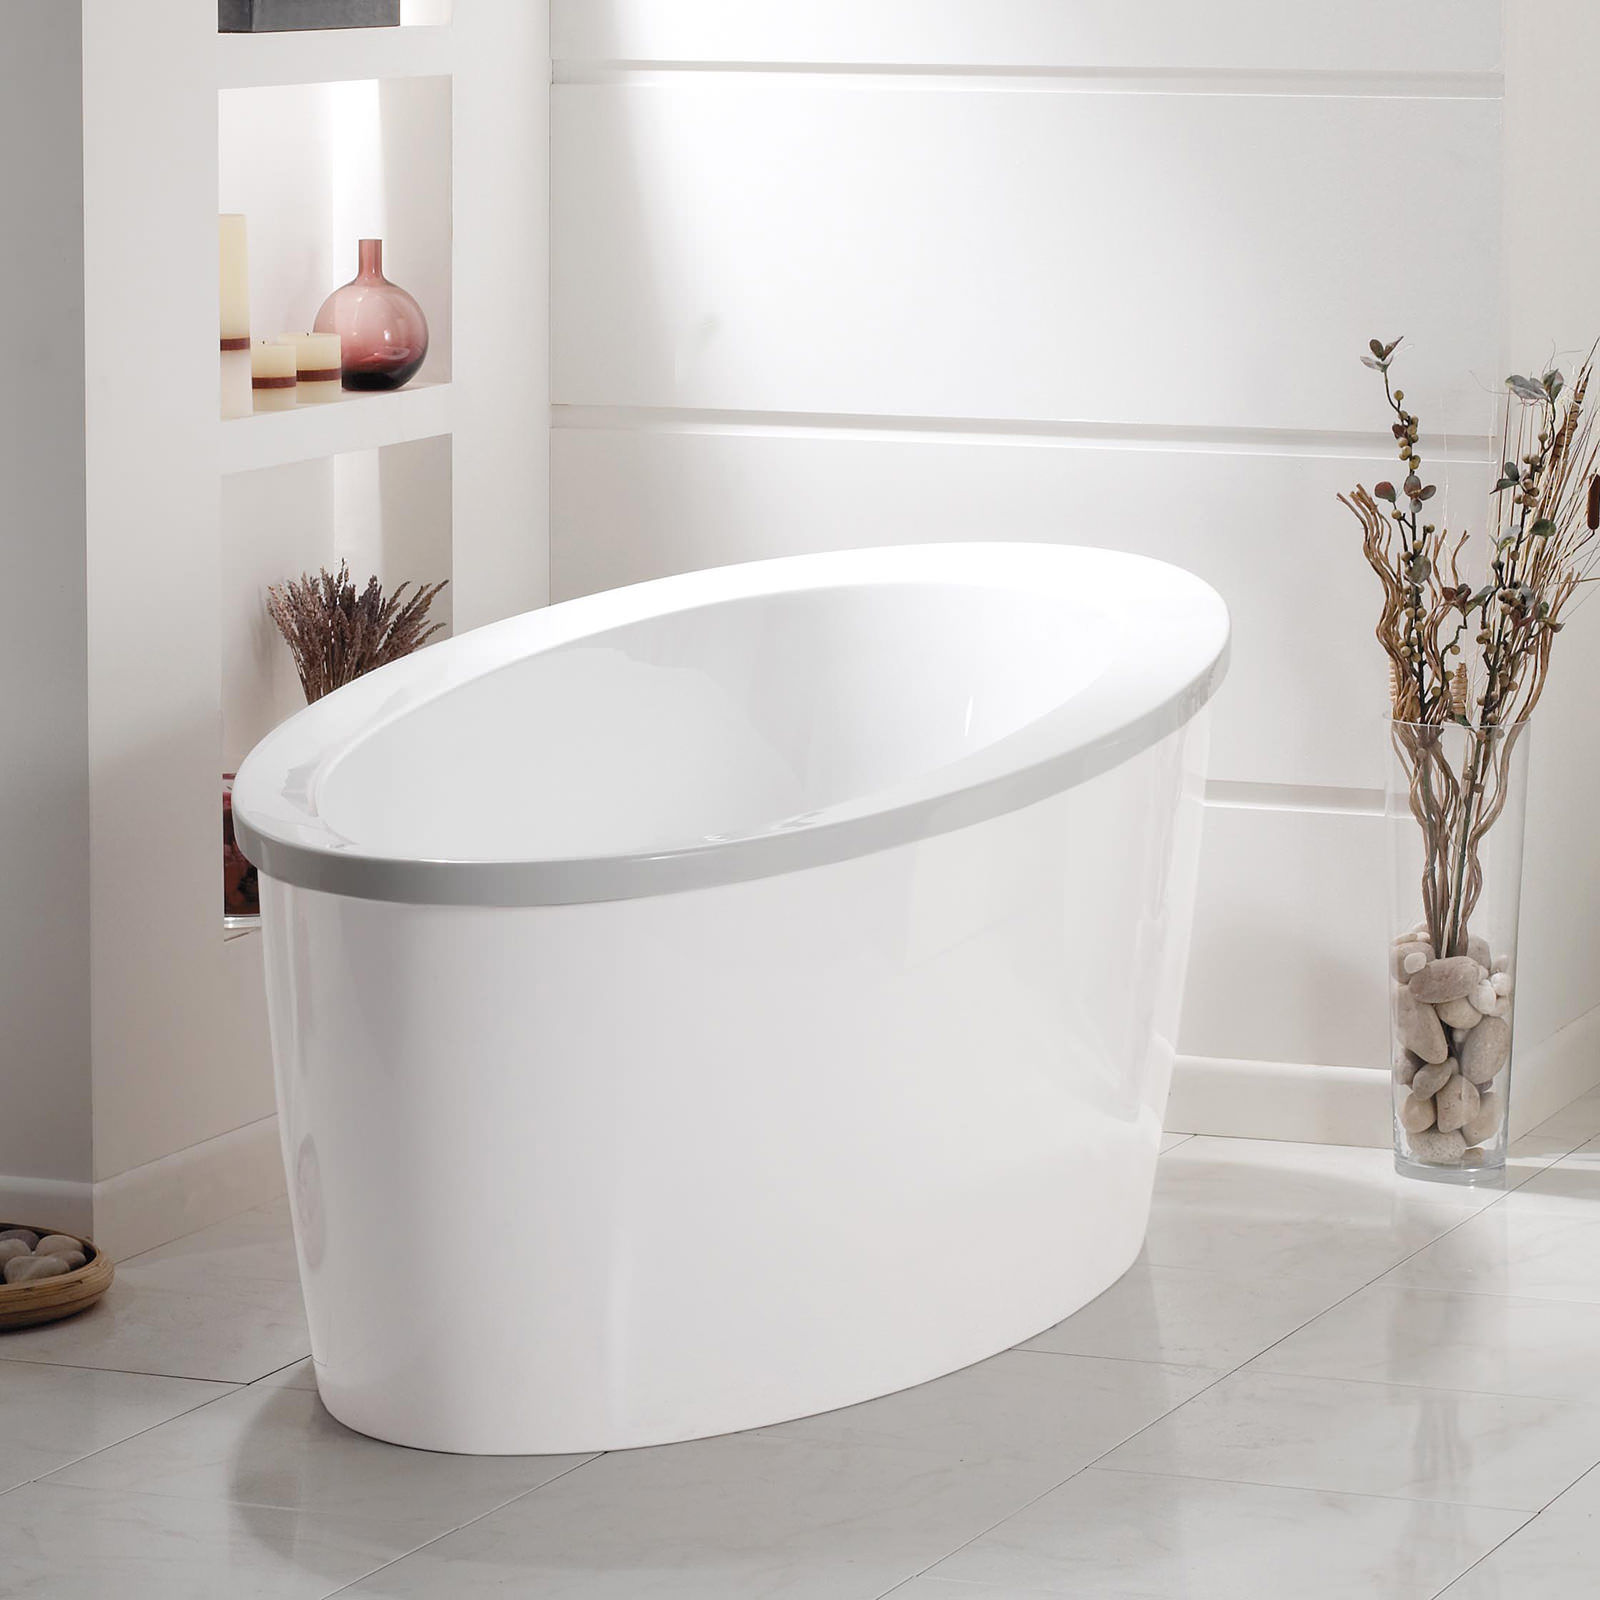 Phoenix conamore bath with white surround 1800 x 900mm conwh for Bath 1800